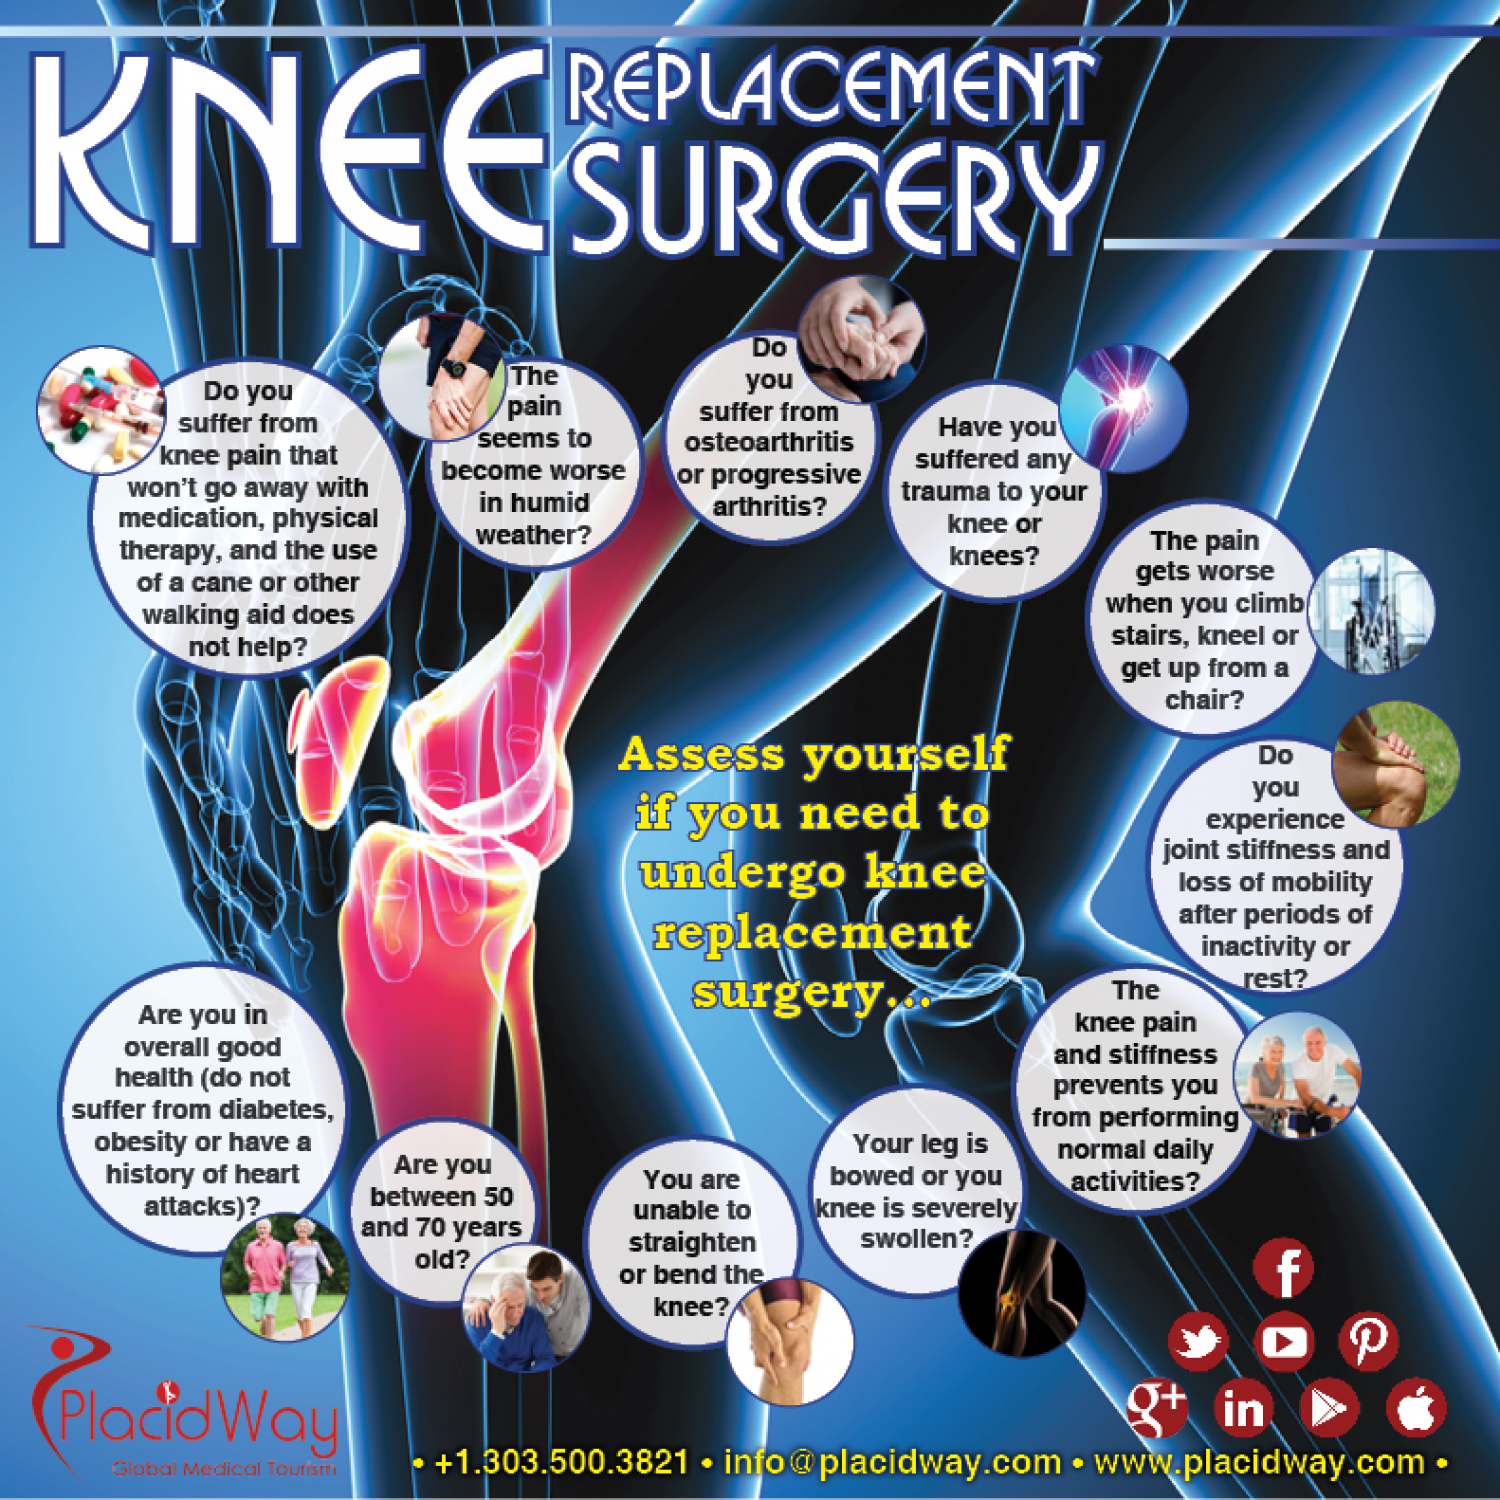 Knee Replacement Surgery Infographic